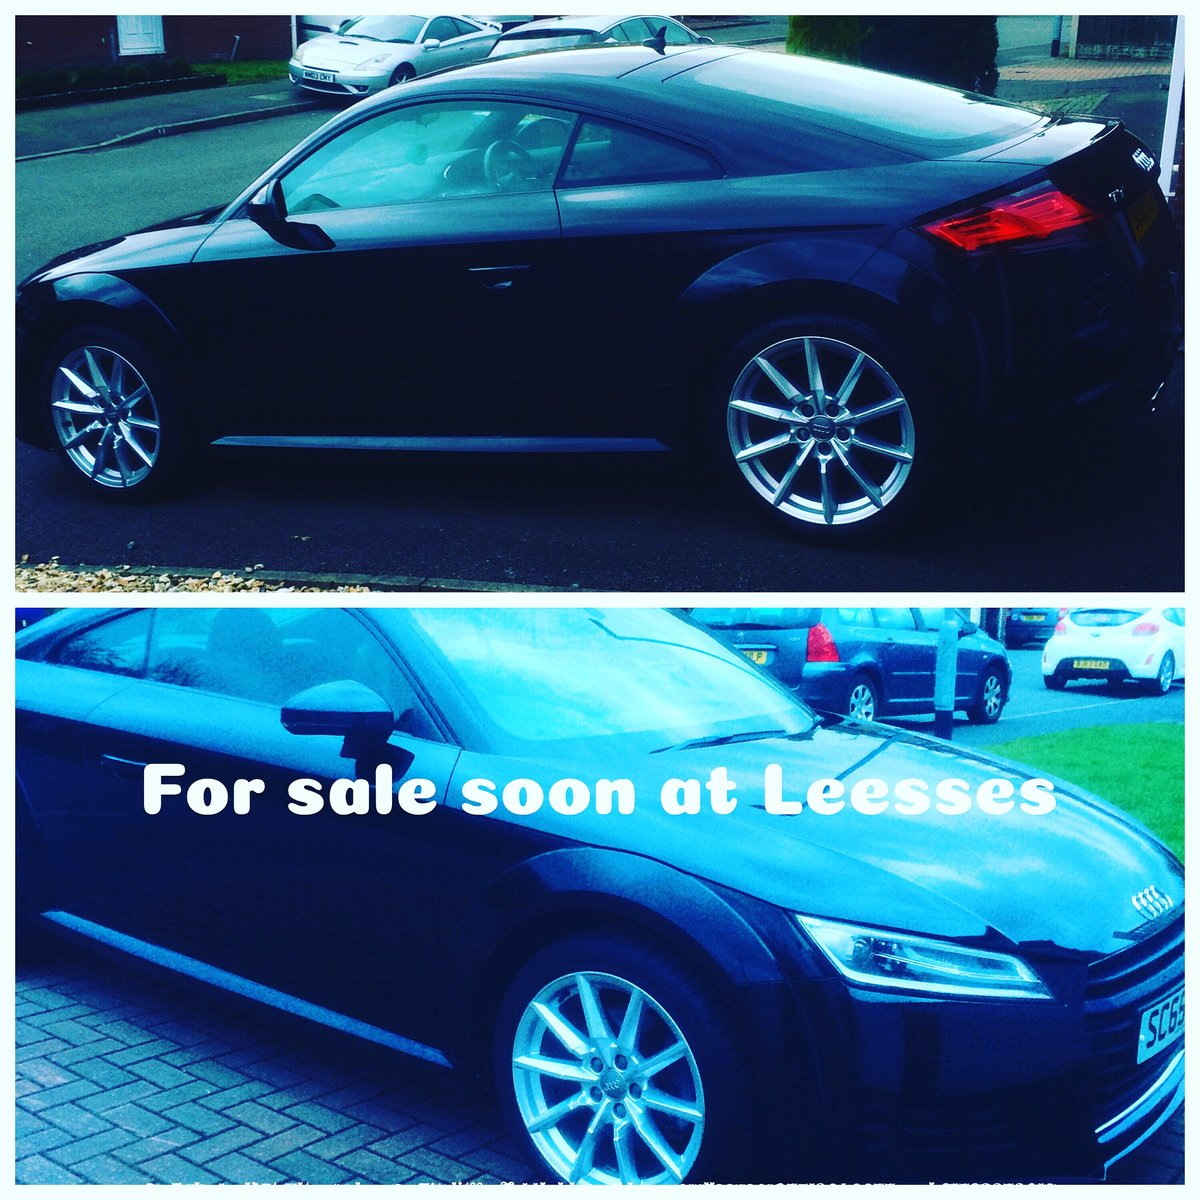 2015 Audi TT ultra 2.0 Diesel Black For Sale (picture 4 of 4)